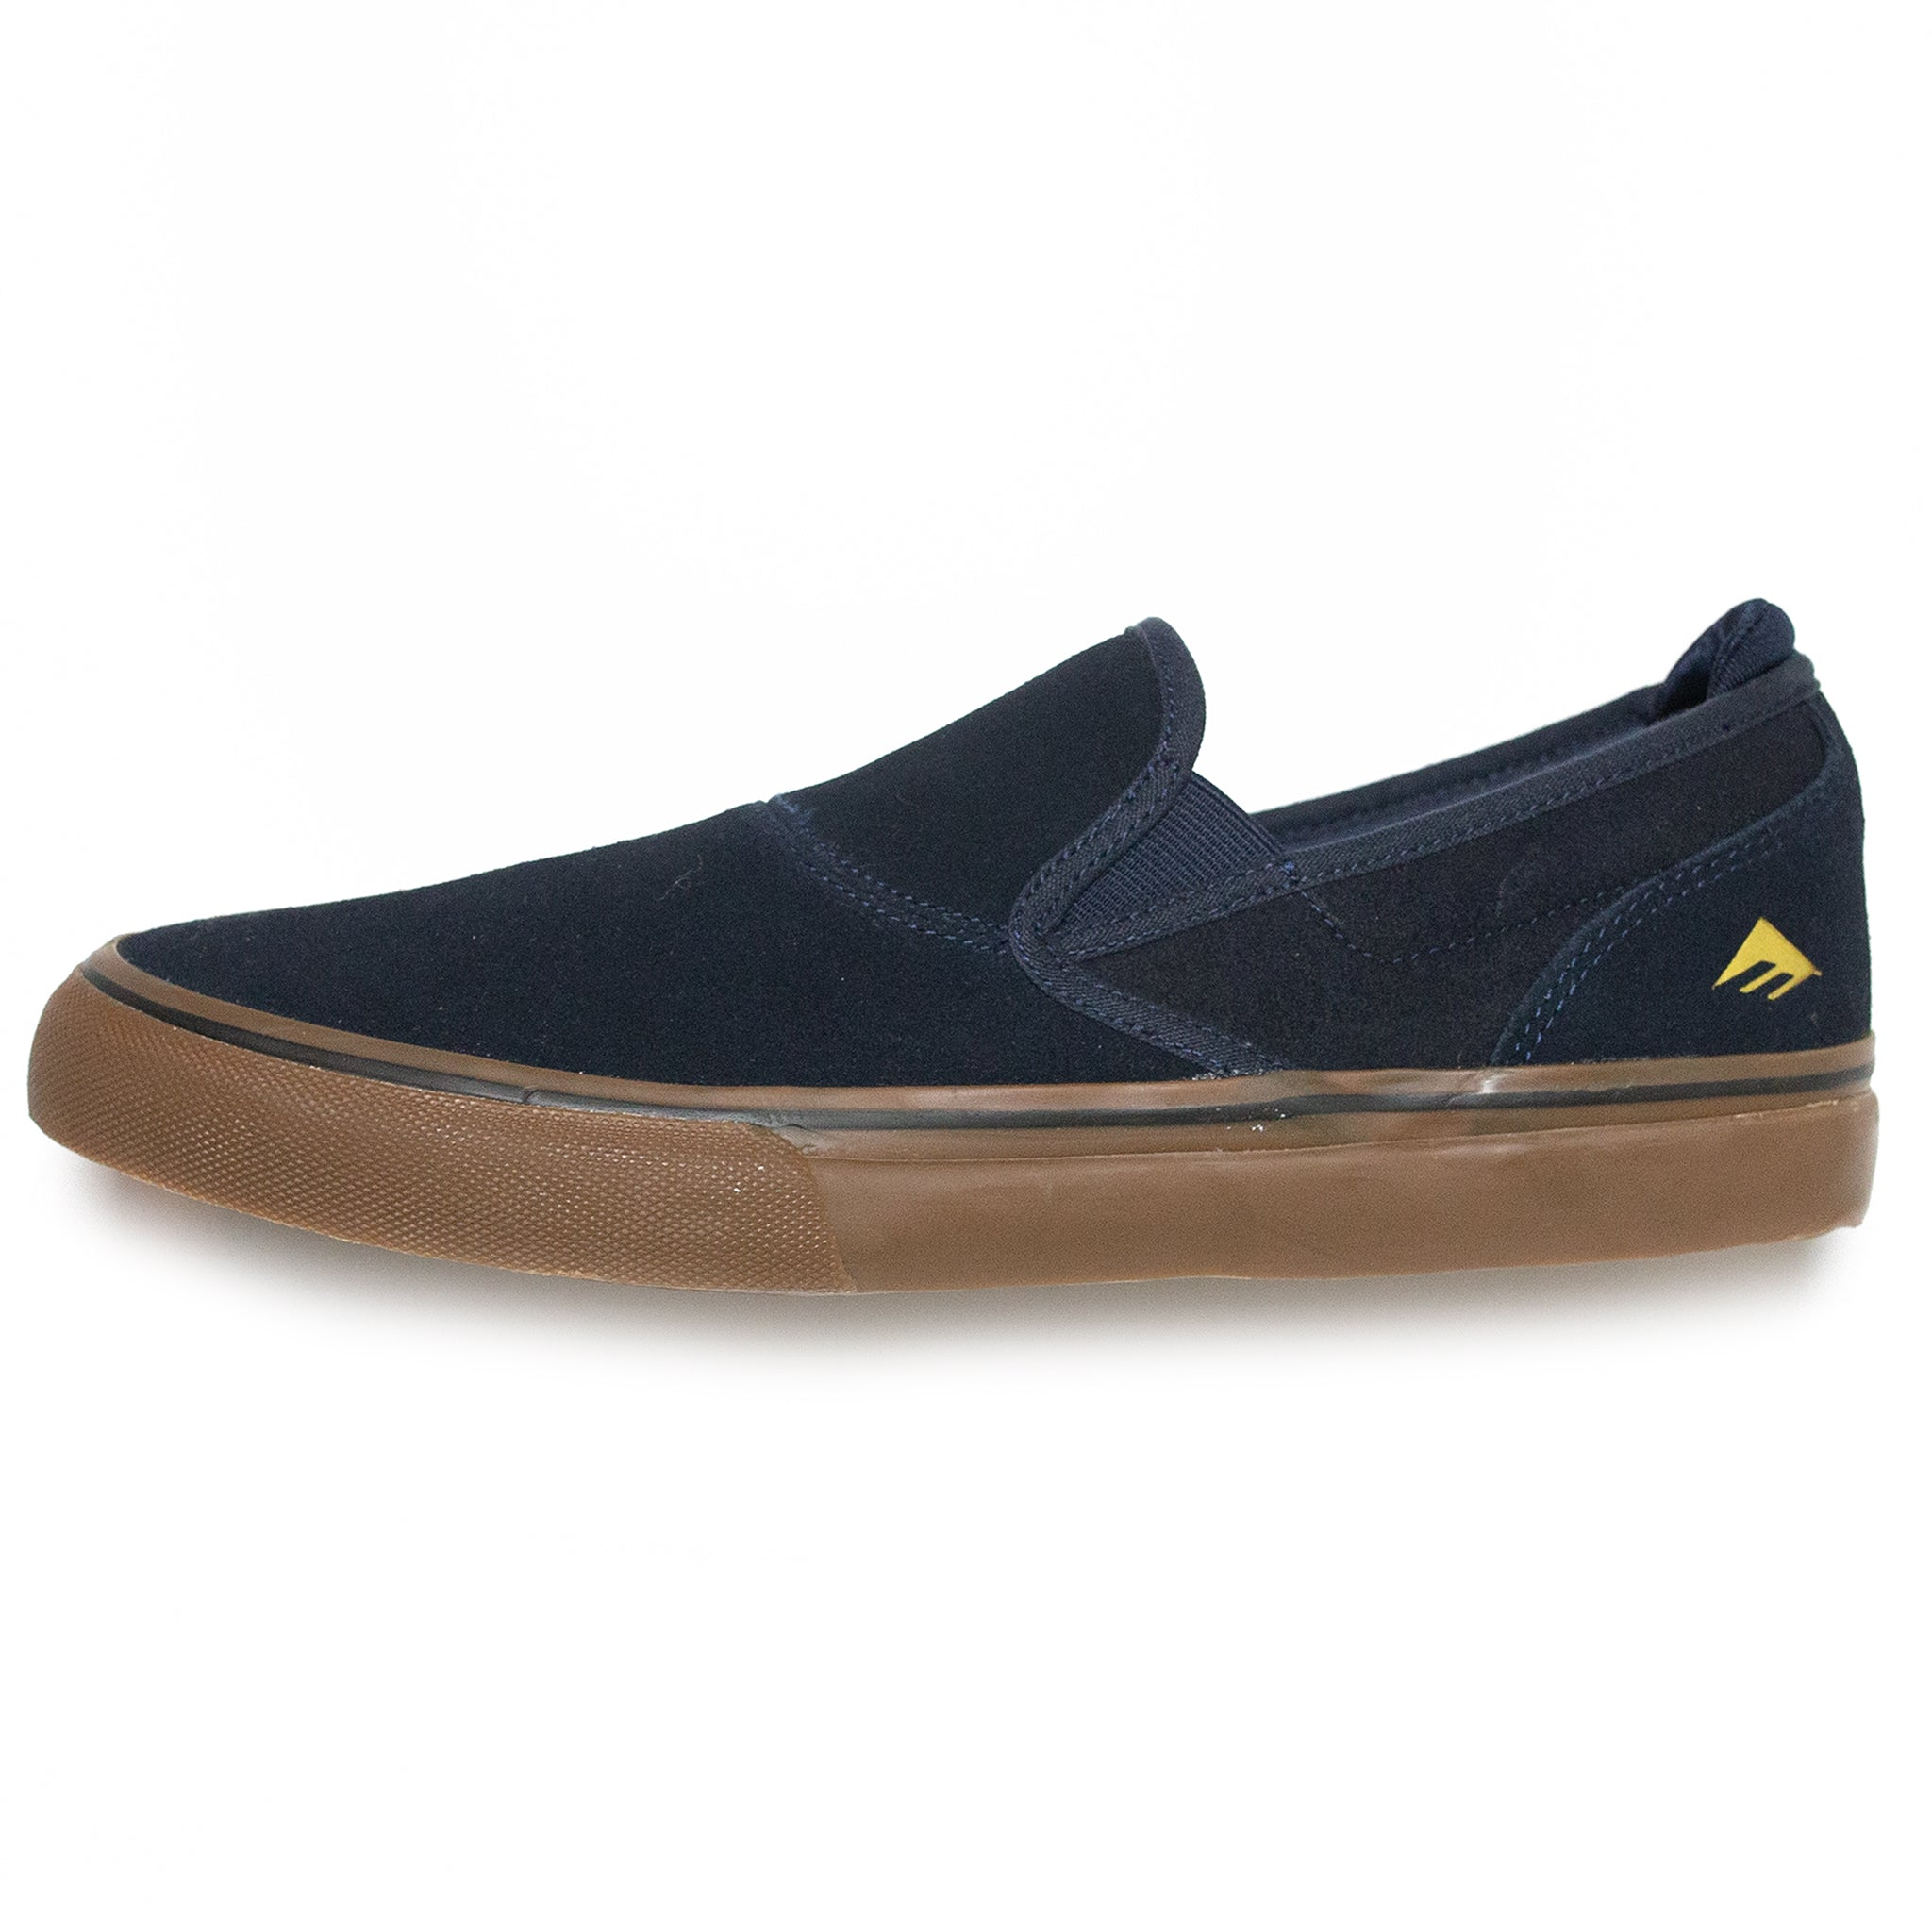 EMERICA - WINO G6 SLIP-ON - NAVY/GUM